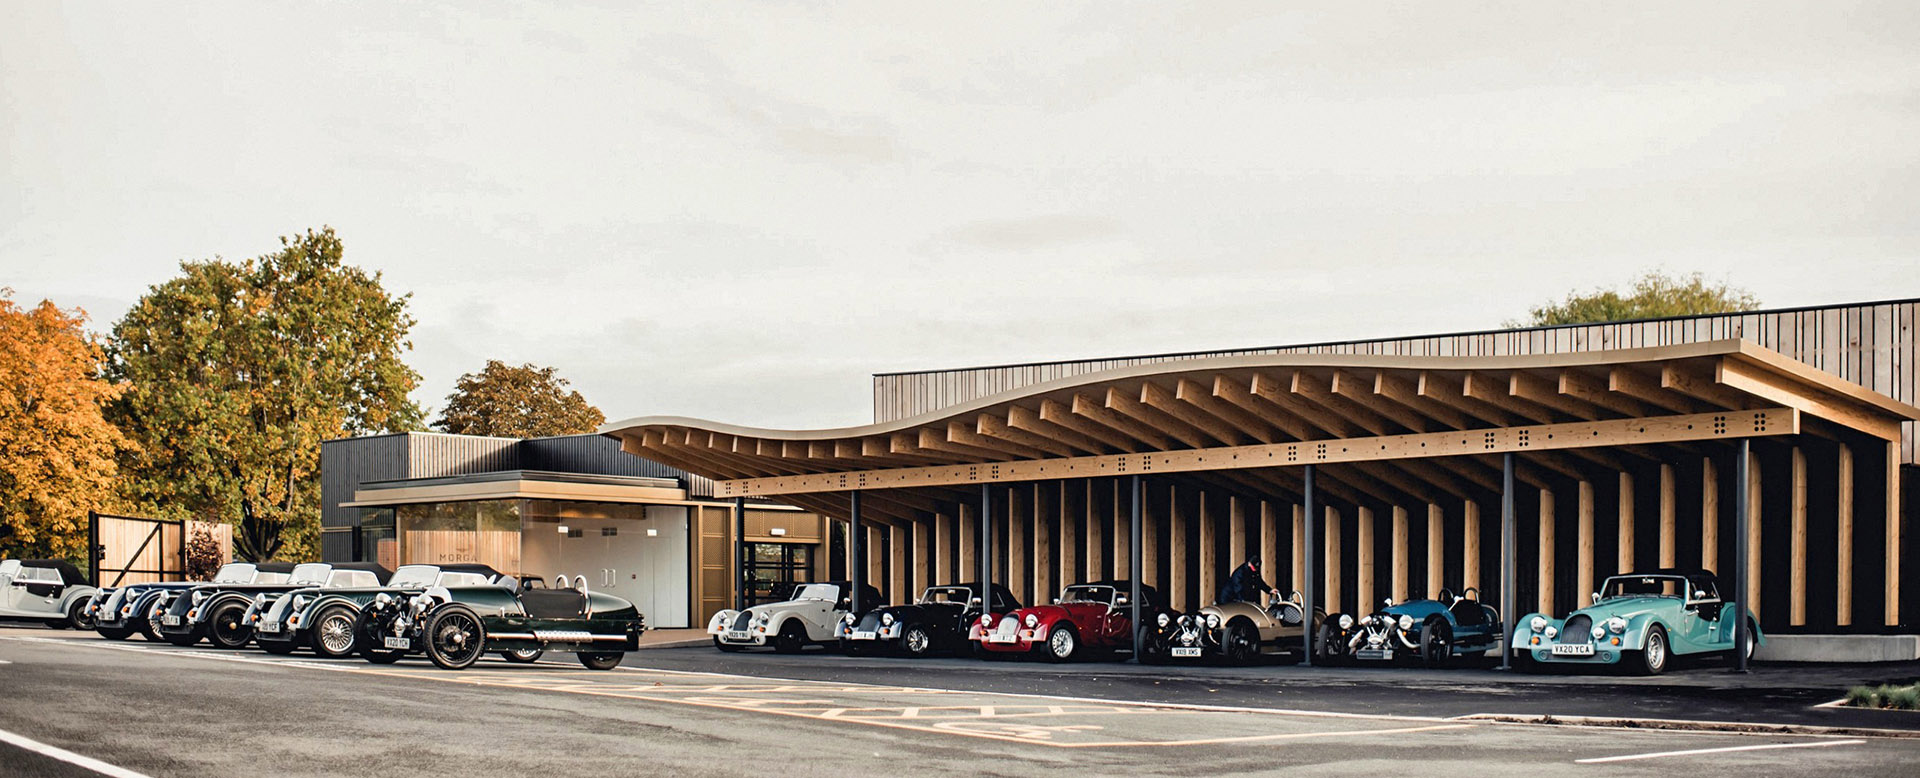 Experience Center for the Morgan Motor Company